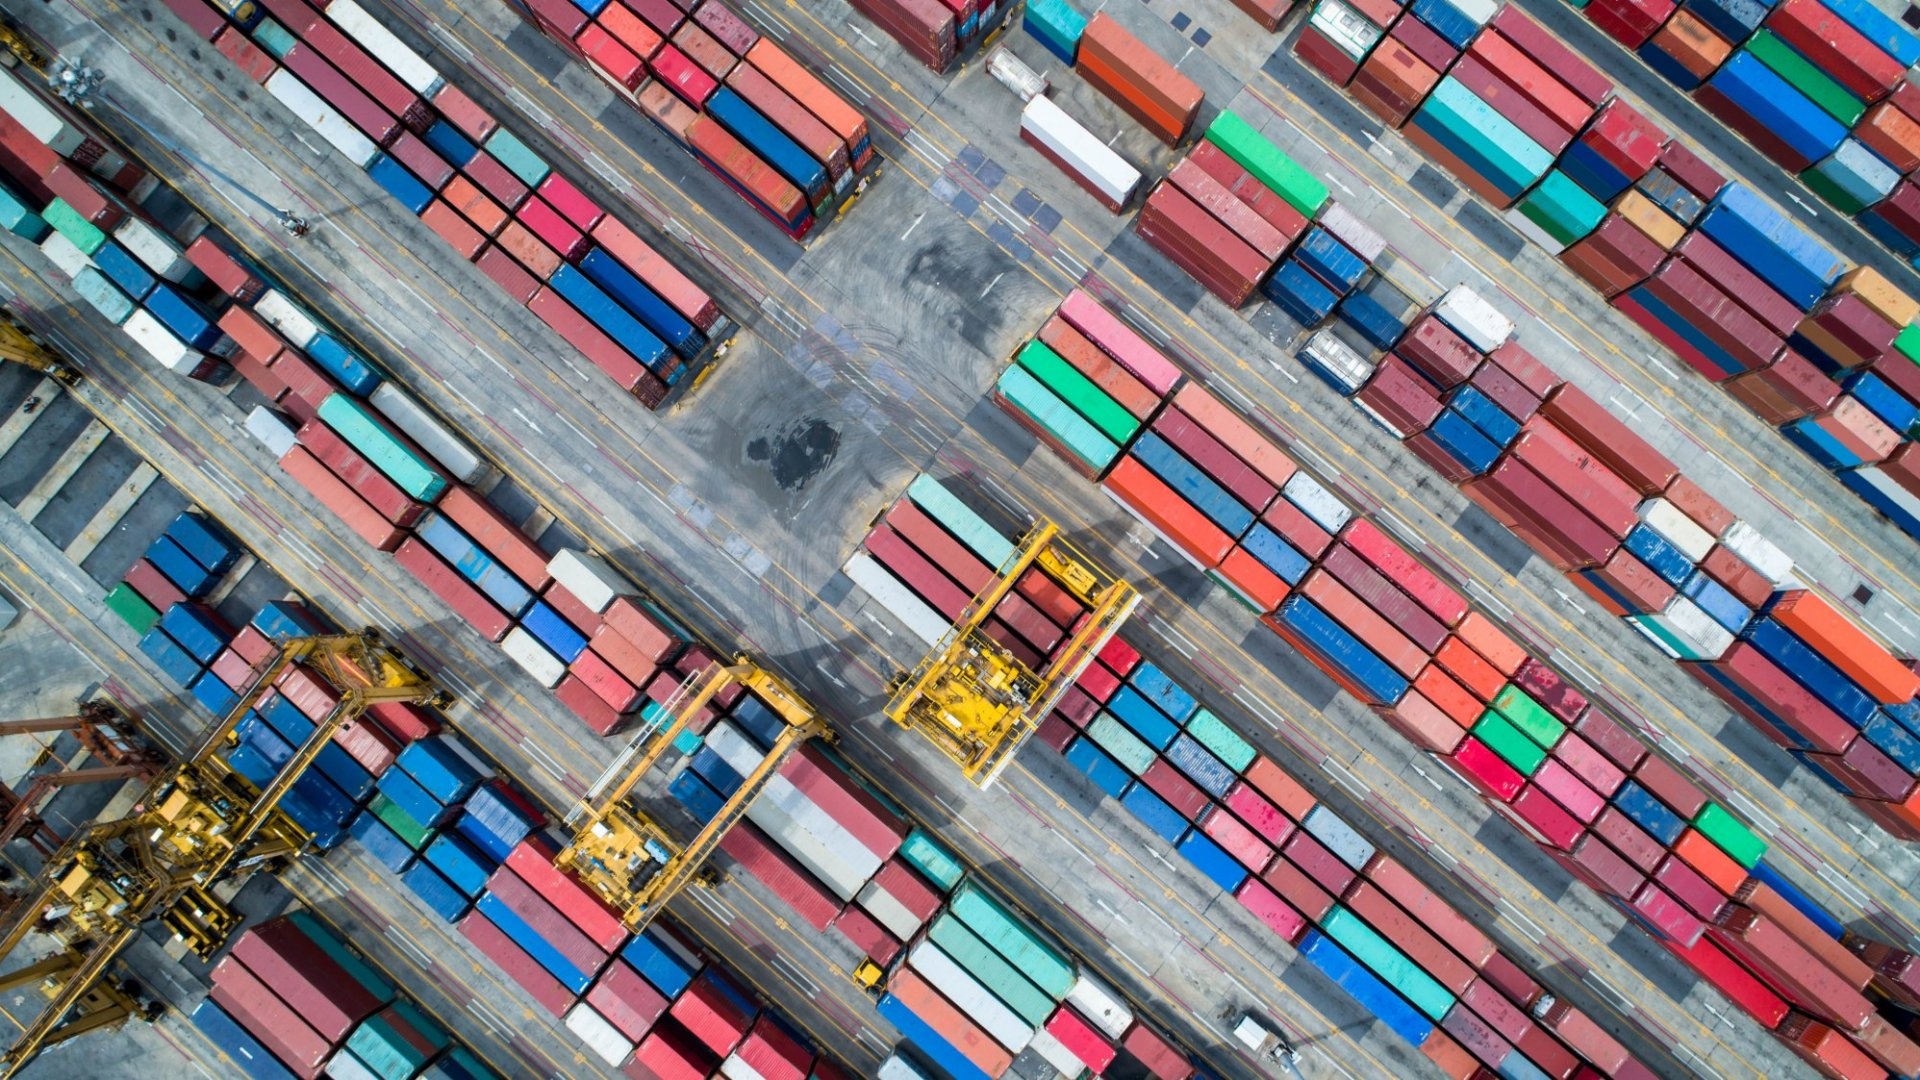 Faced With Tariffs, U.S. Businesses Are Forced to Make Tough Decisions to Stay Afloat